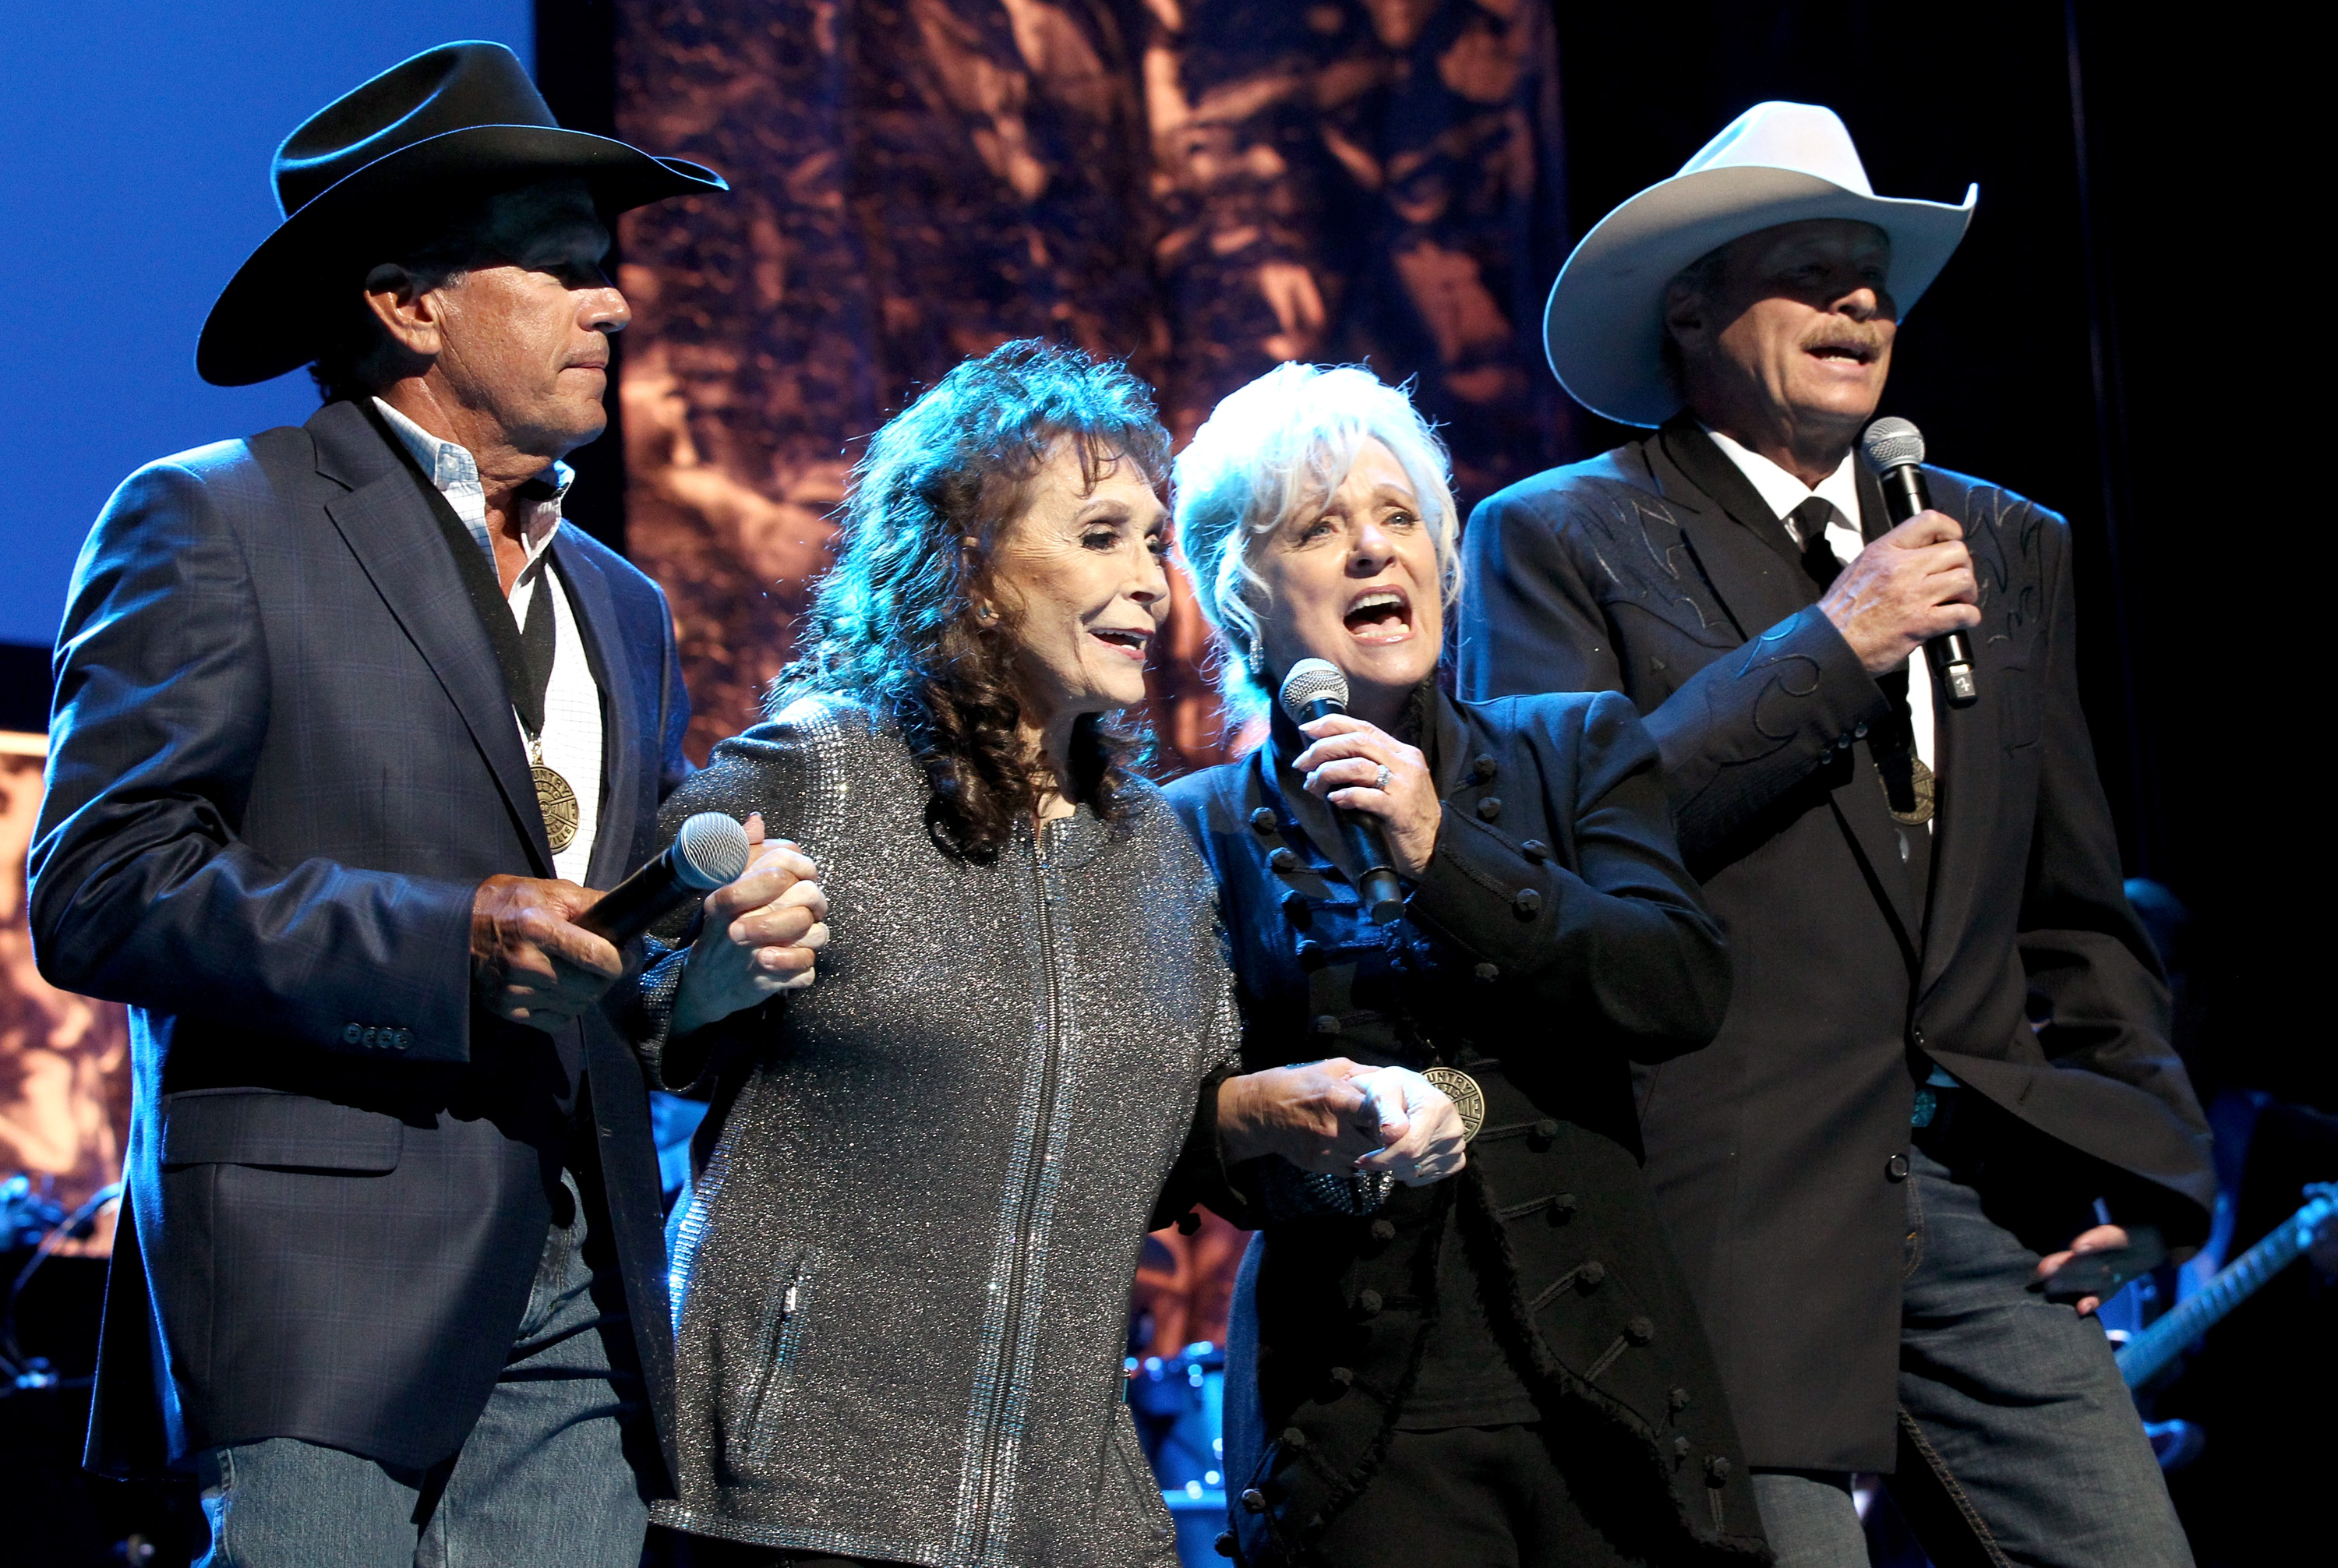 Musicians George Strait, Loretta Lynn, Connie Smith and Alan Jackson perform onstage at the Country Music Hall of Fame and Museum Medallion Ceremony; Photo by Terry Wyatt/Getty Images for Country Music Hall Of Fame & Museum